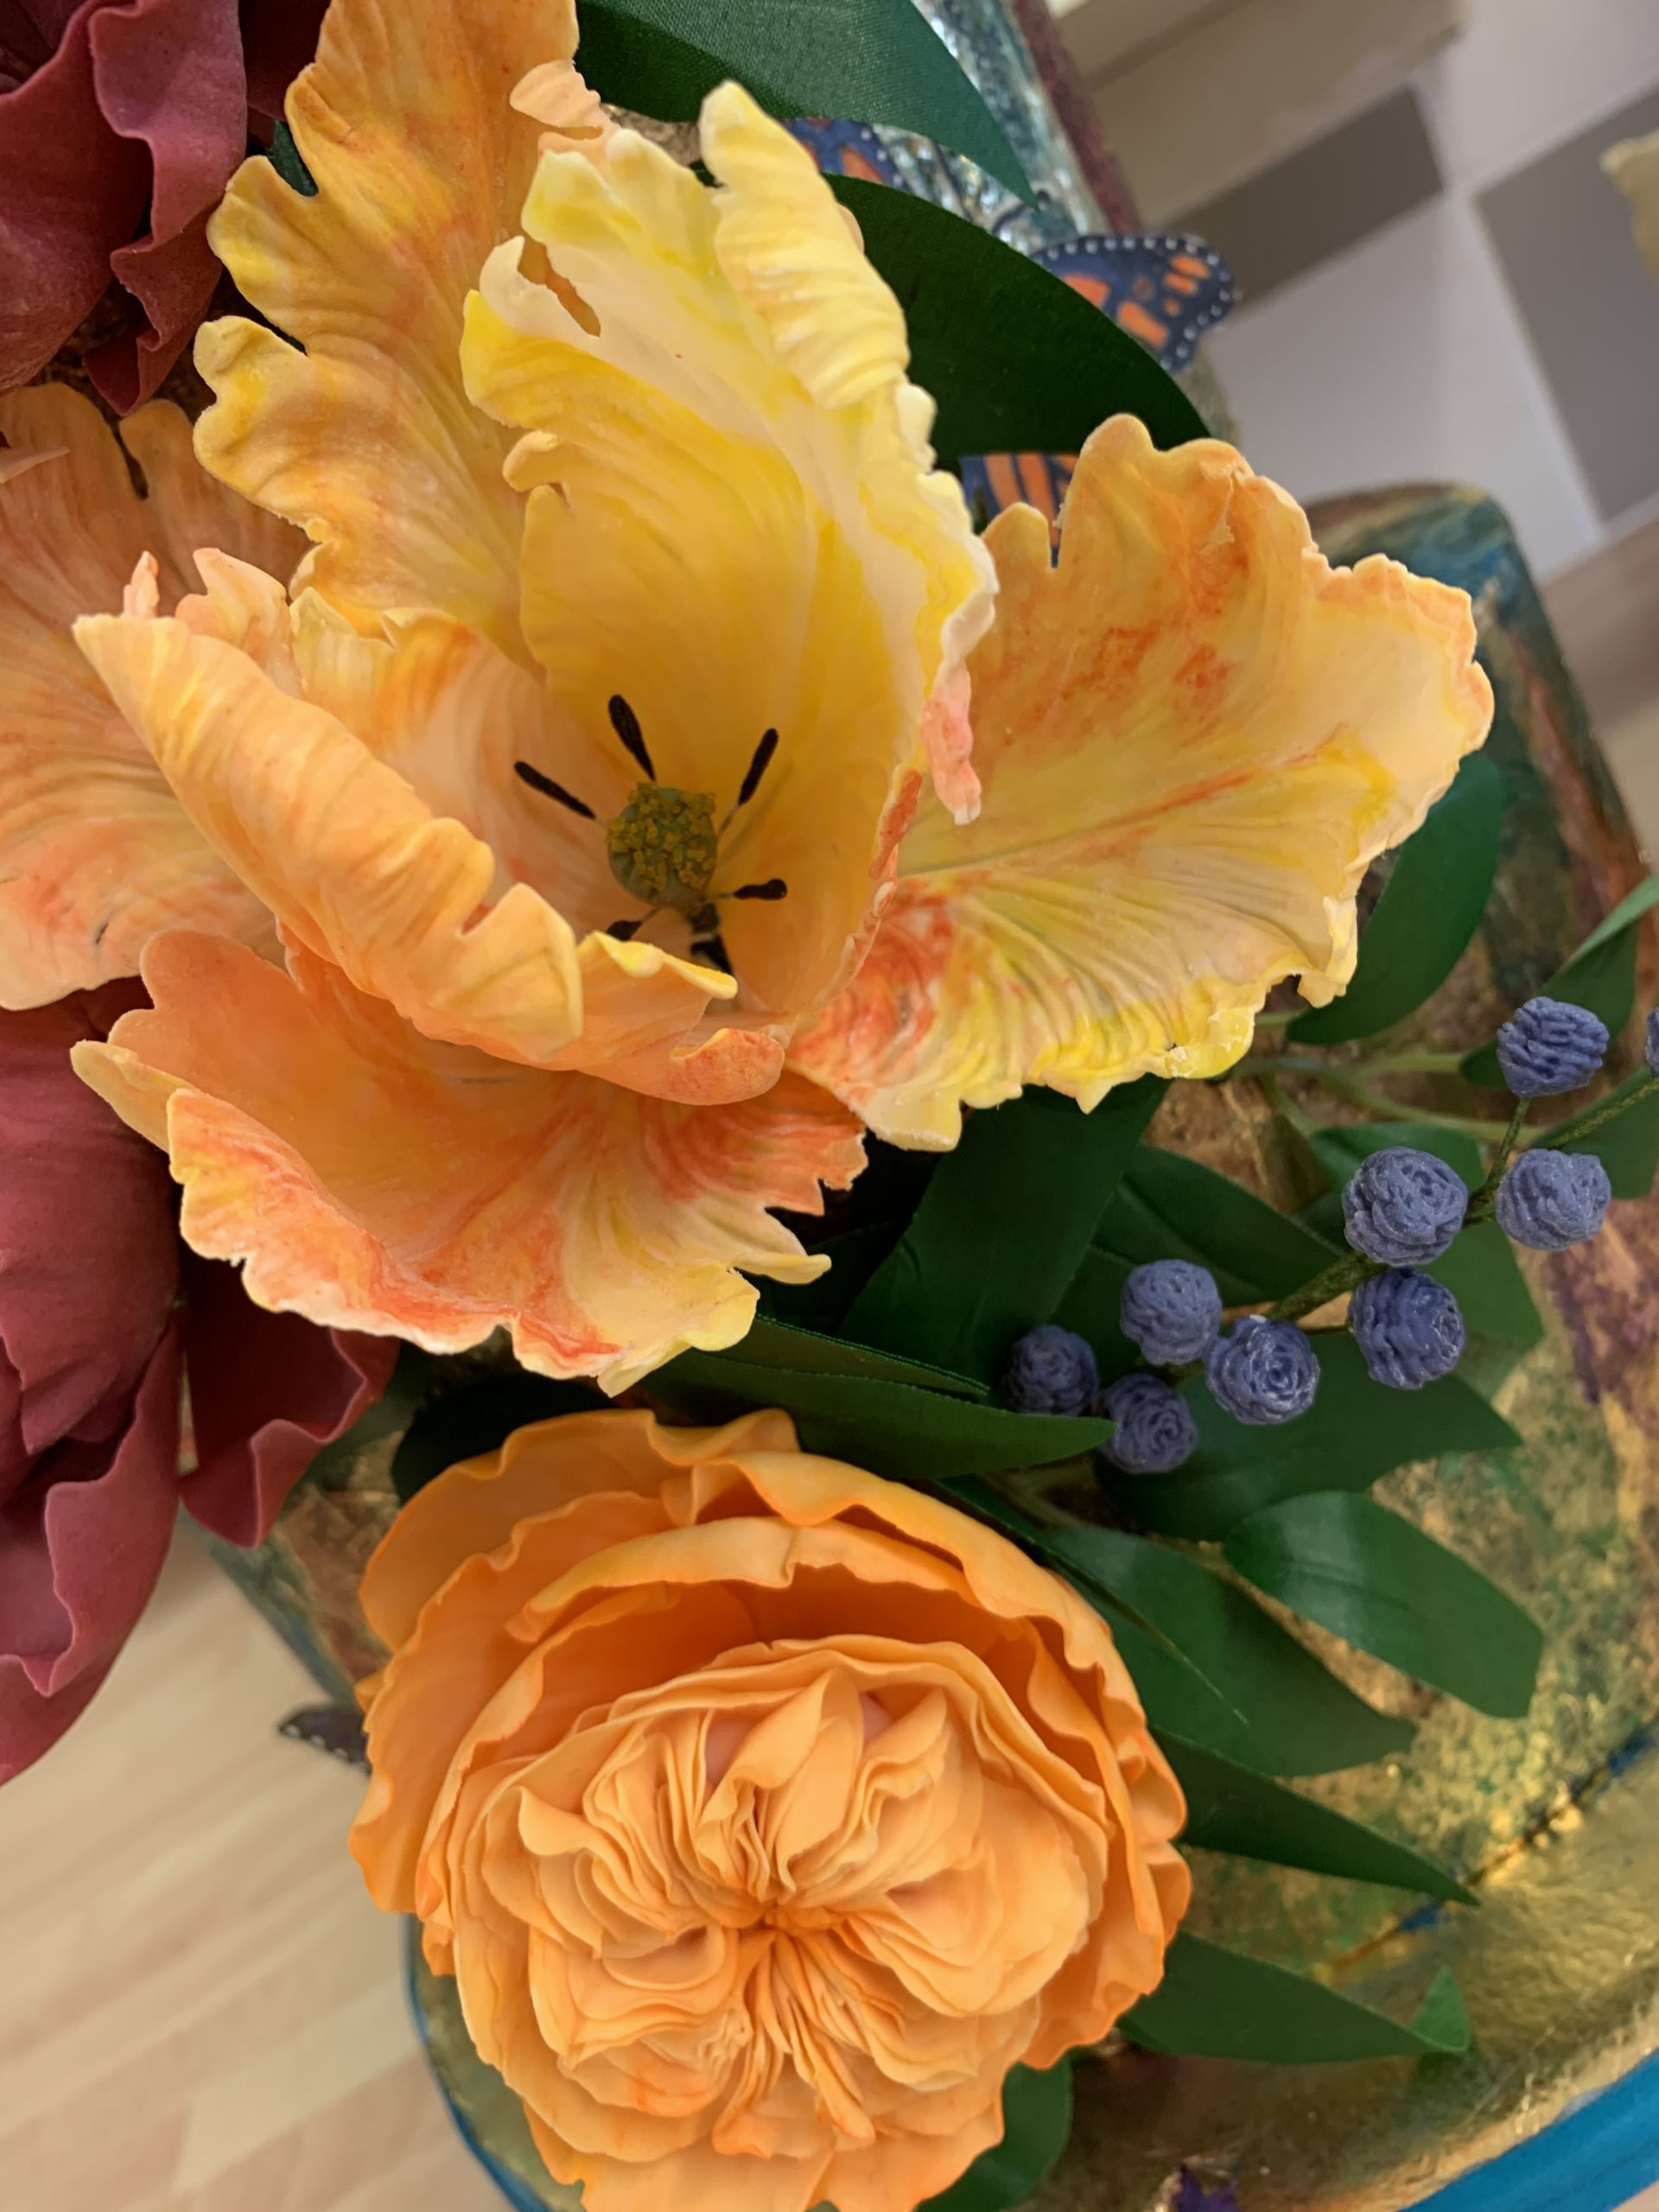 Sugar parrot tulips and roses